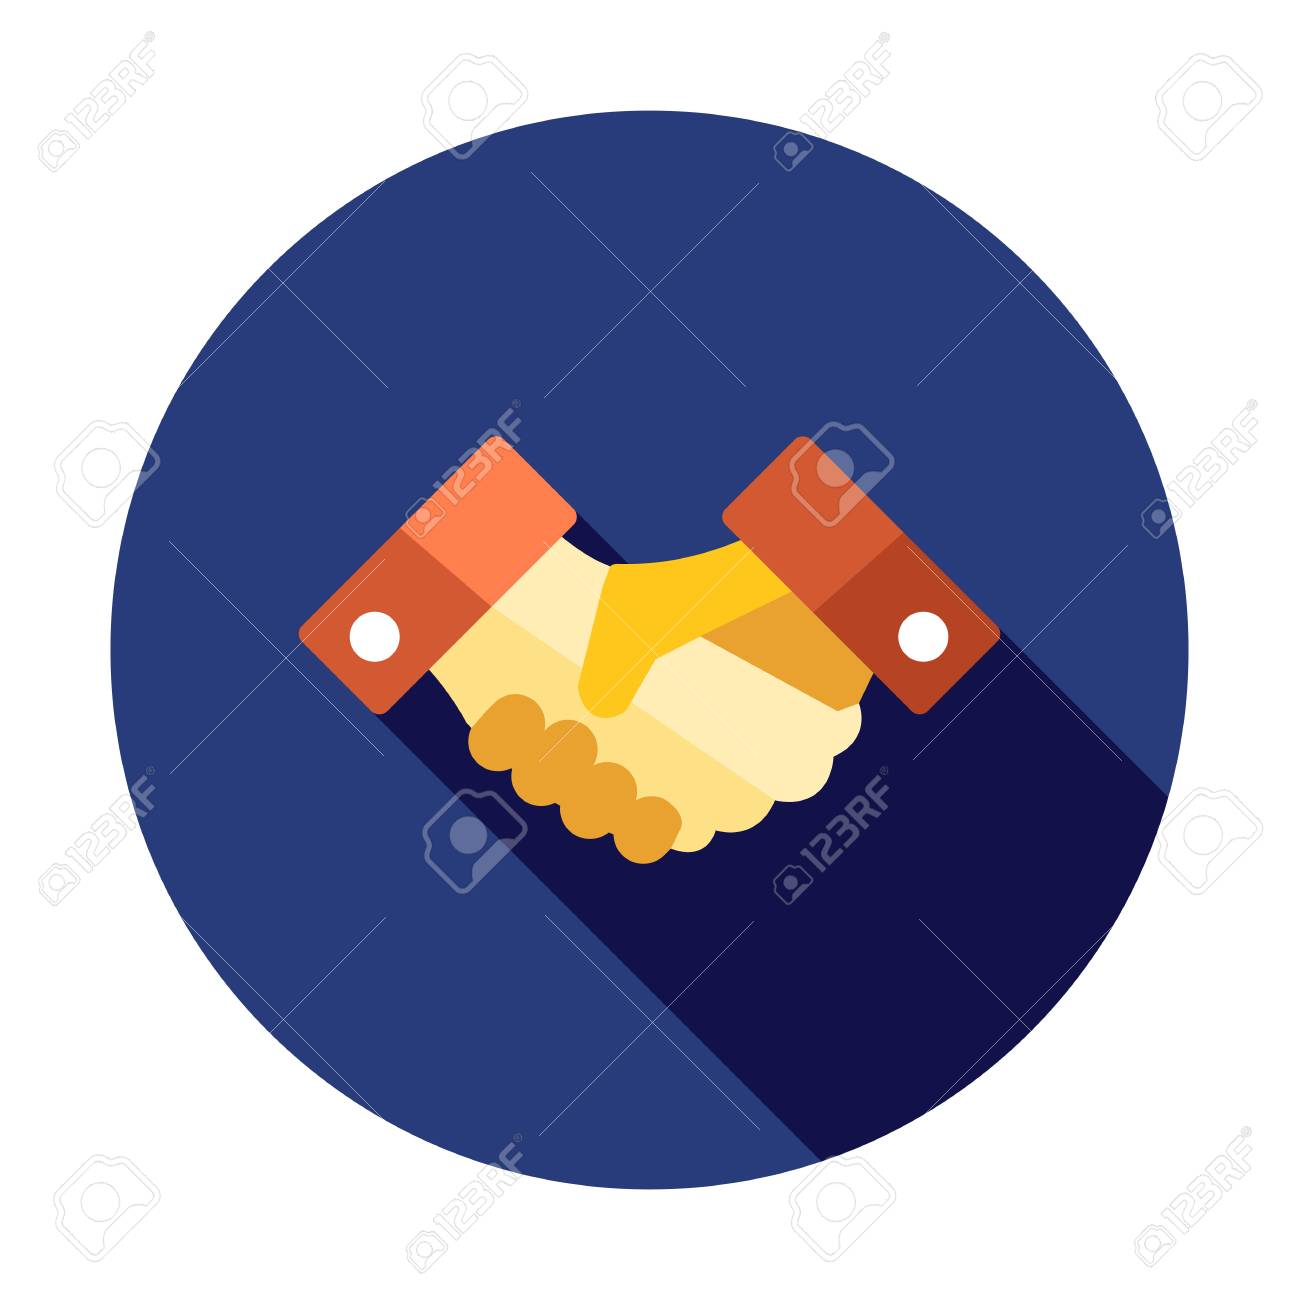 Business Handshake. Business icon. Contract agreement sign. Deal symbol. Partnership shaking hands icon - 127520761